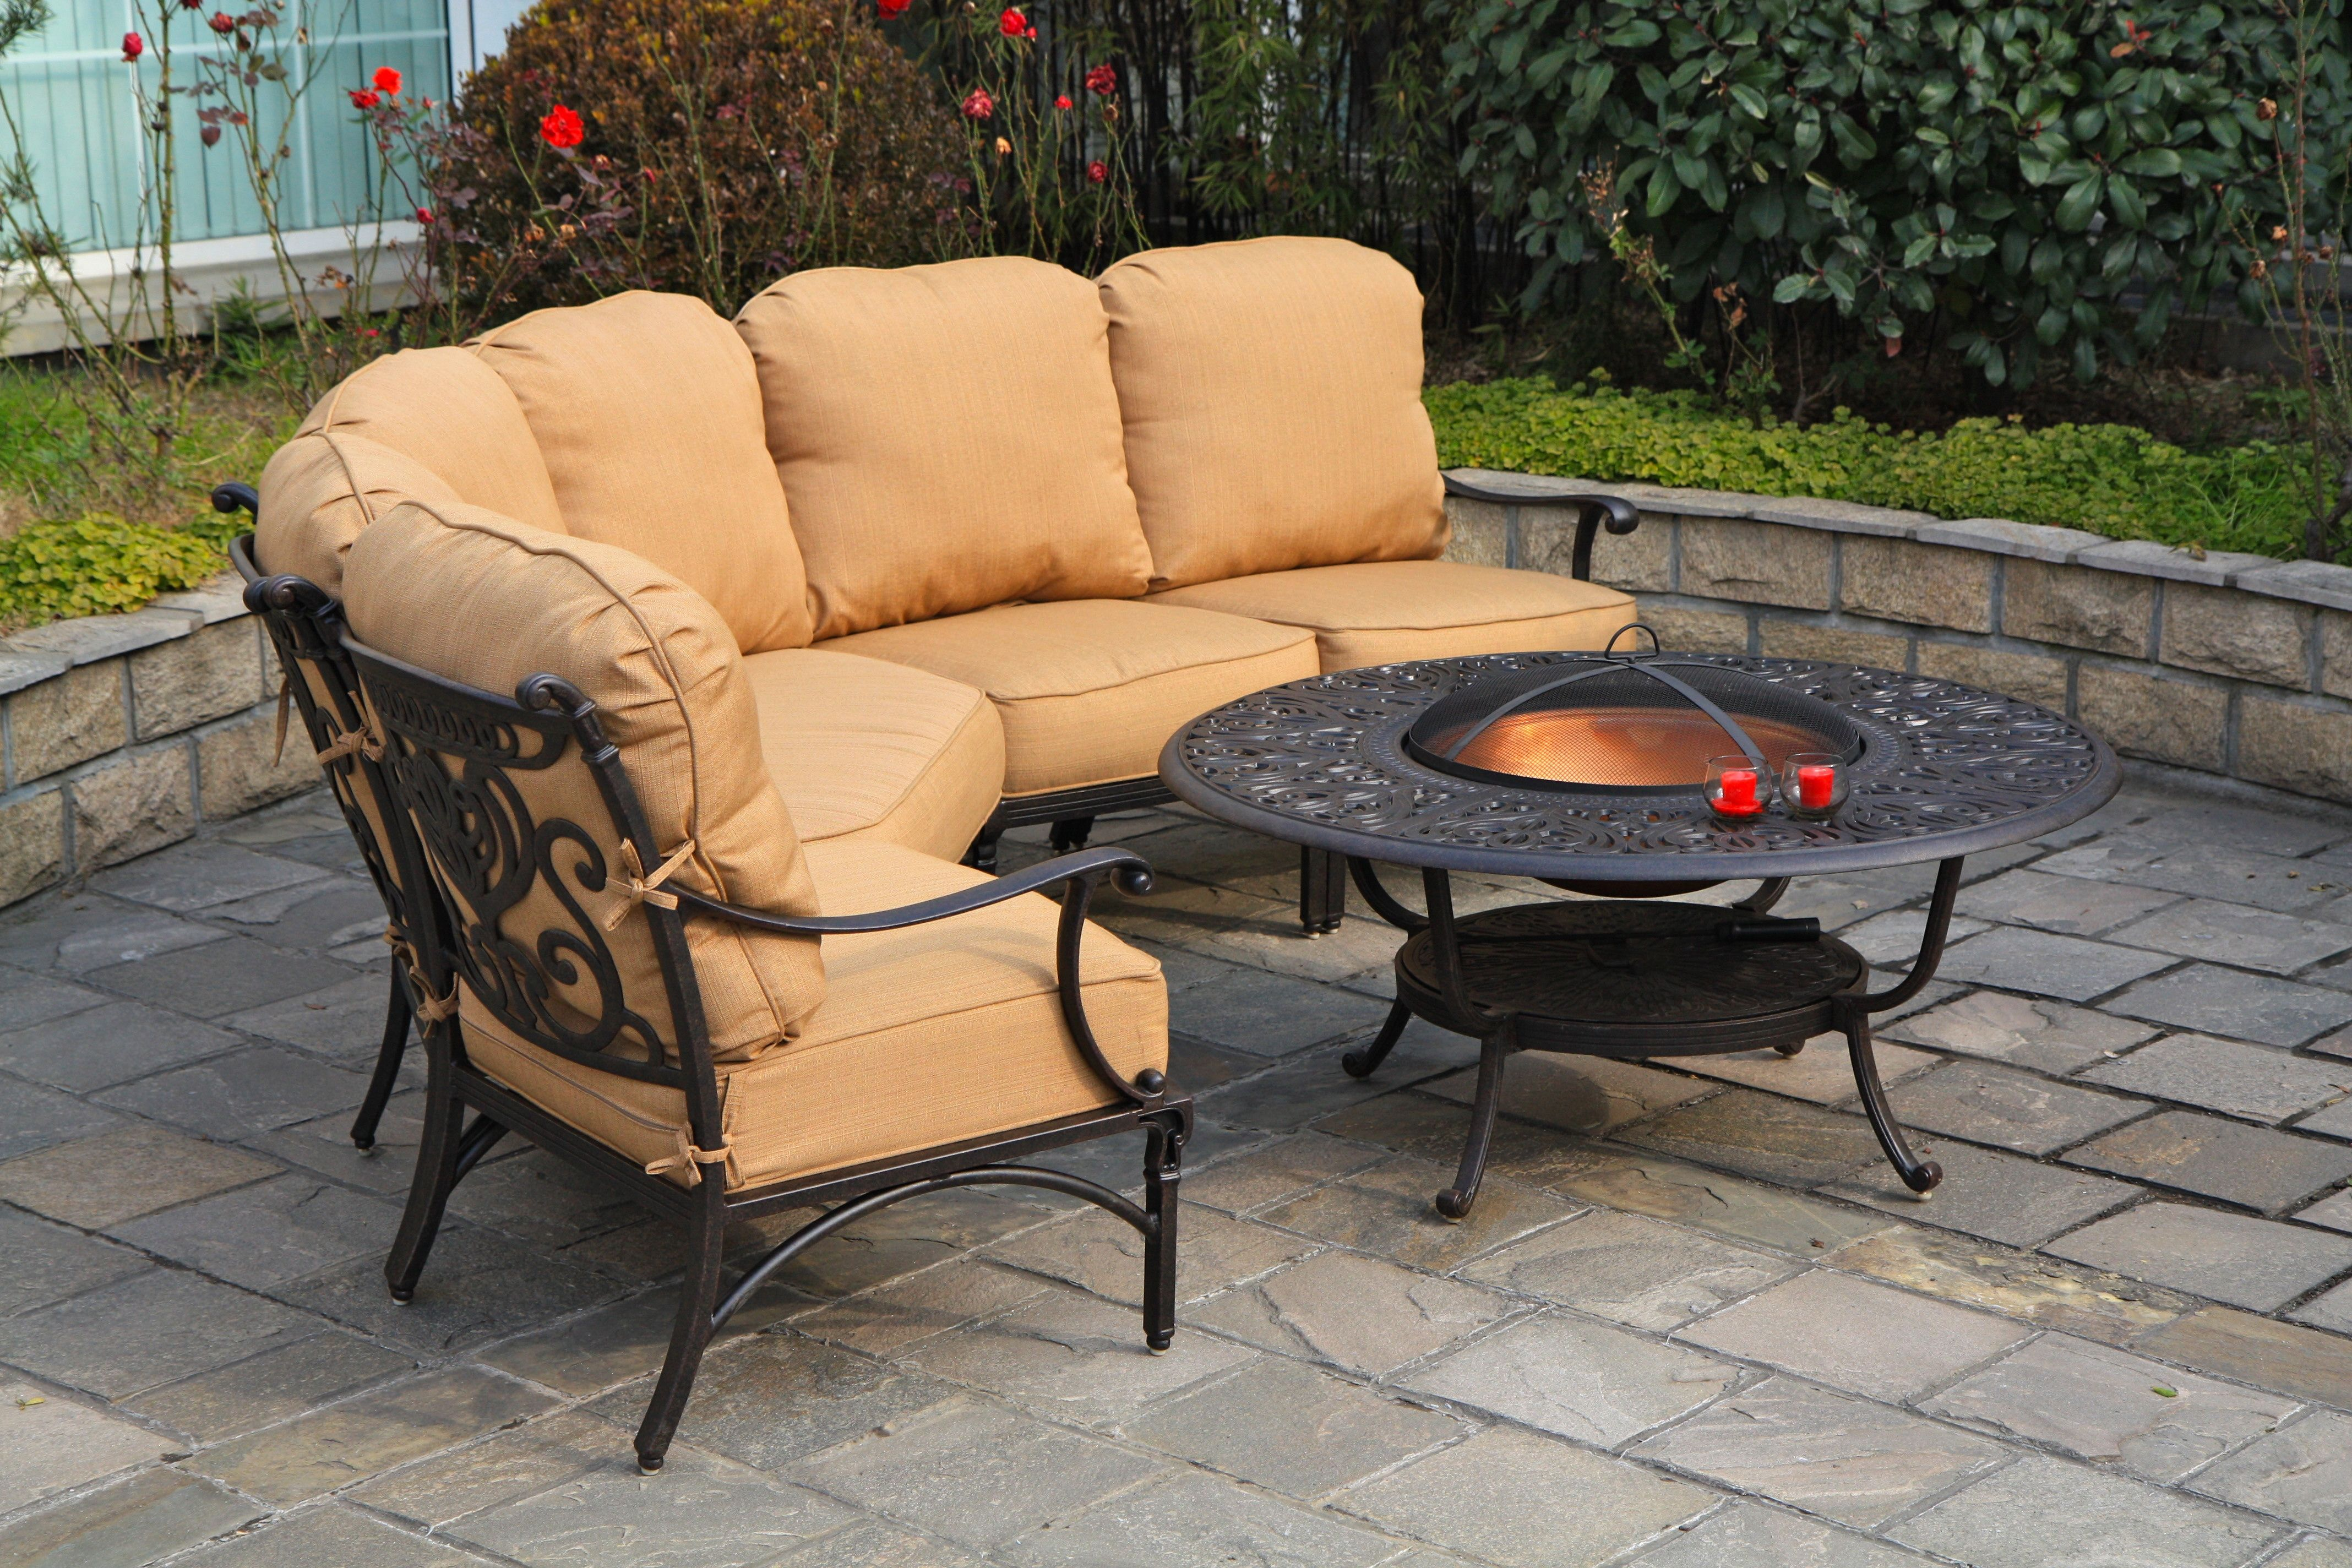 grand tuscany sectional patio set from hanamint available at stauffers rohrerstown and